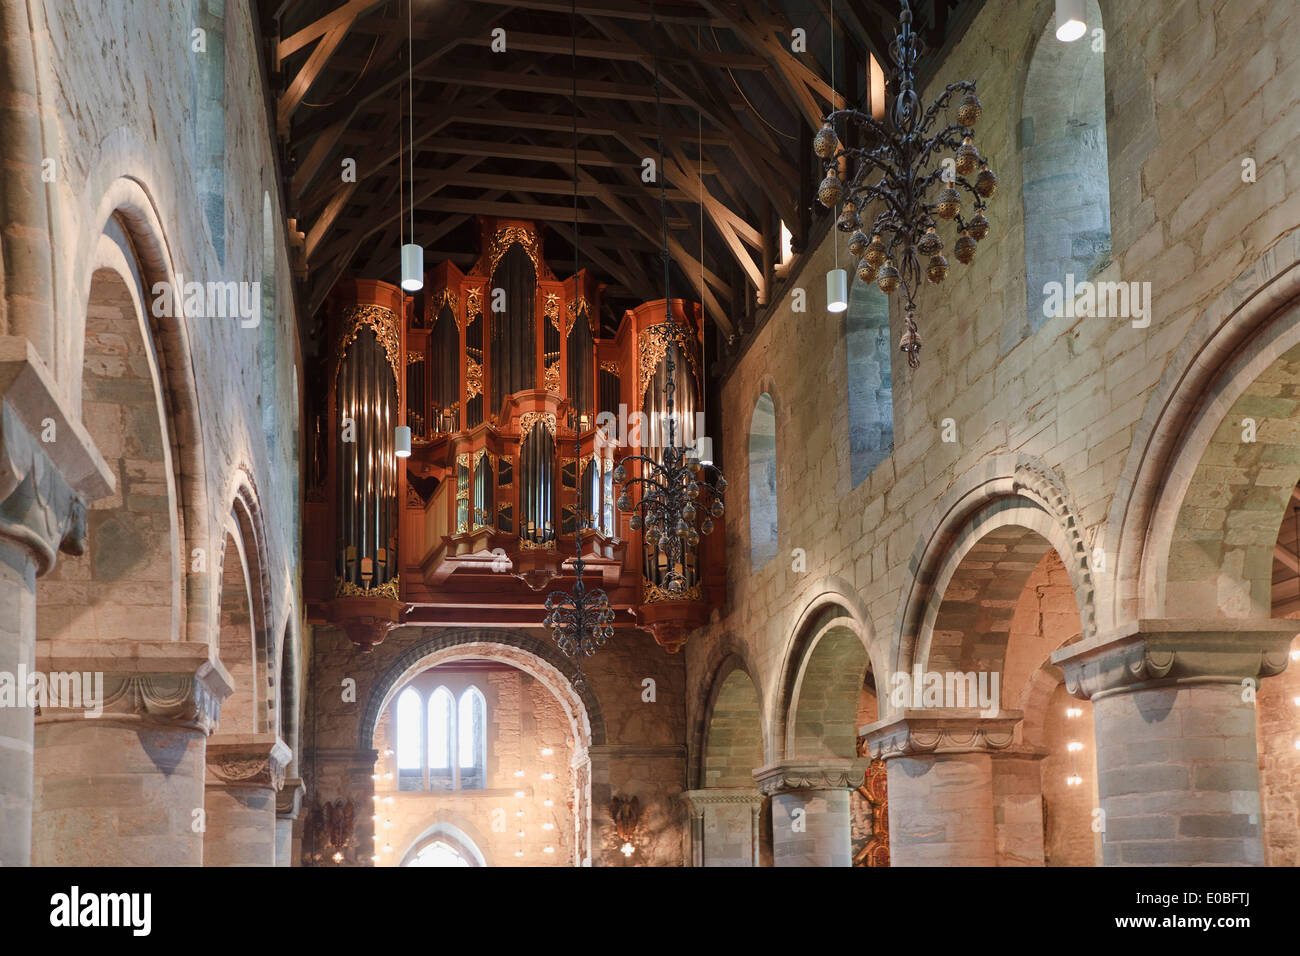 Interior of Stavanger Cathedral, Norway Stock Photo, Royalty Free Image: 69095394 - Alamy